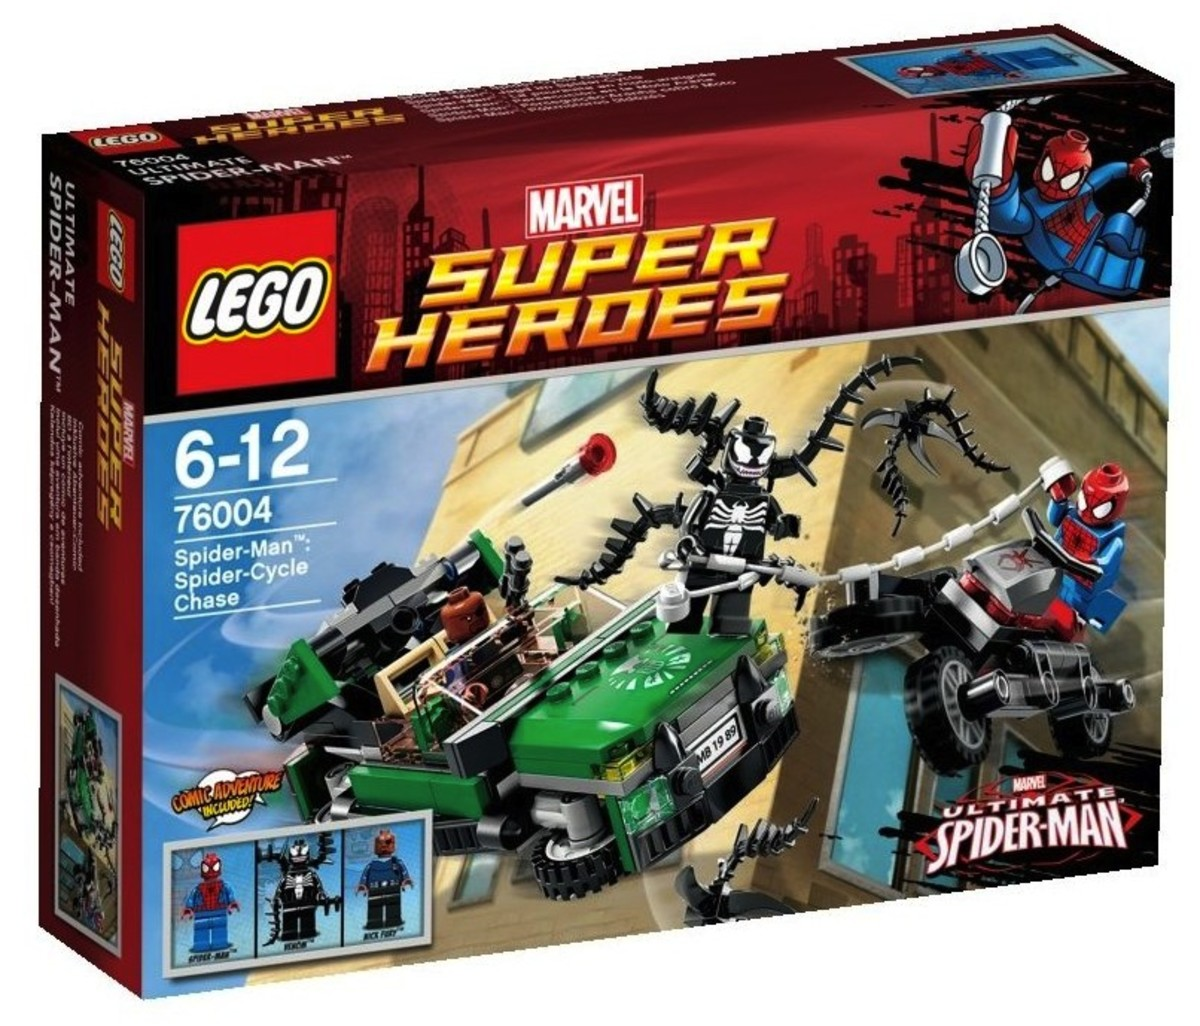 LEGO Super Heroes Spider-Man: Spider-Cycle Chase 76004 Box